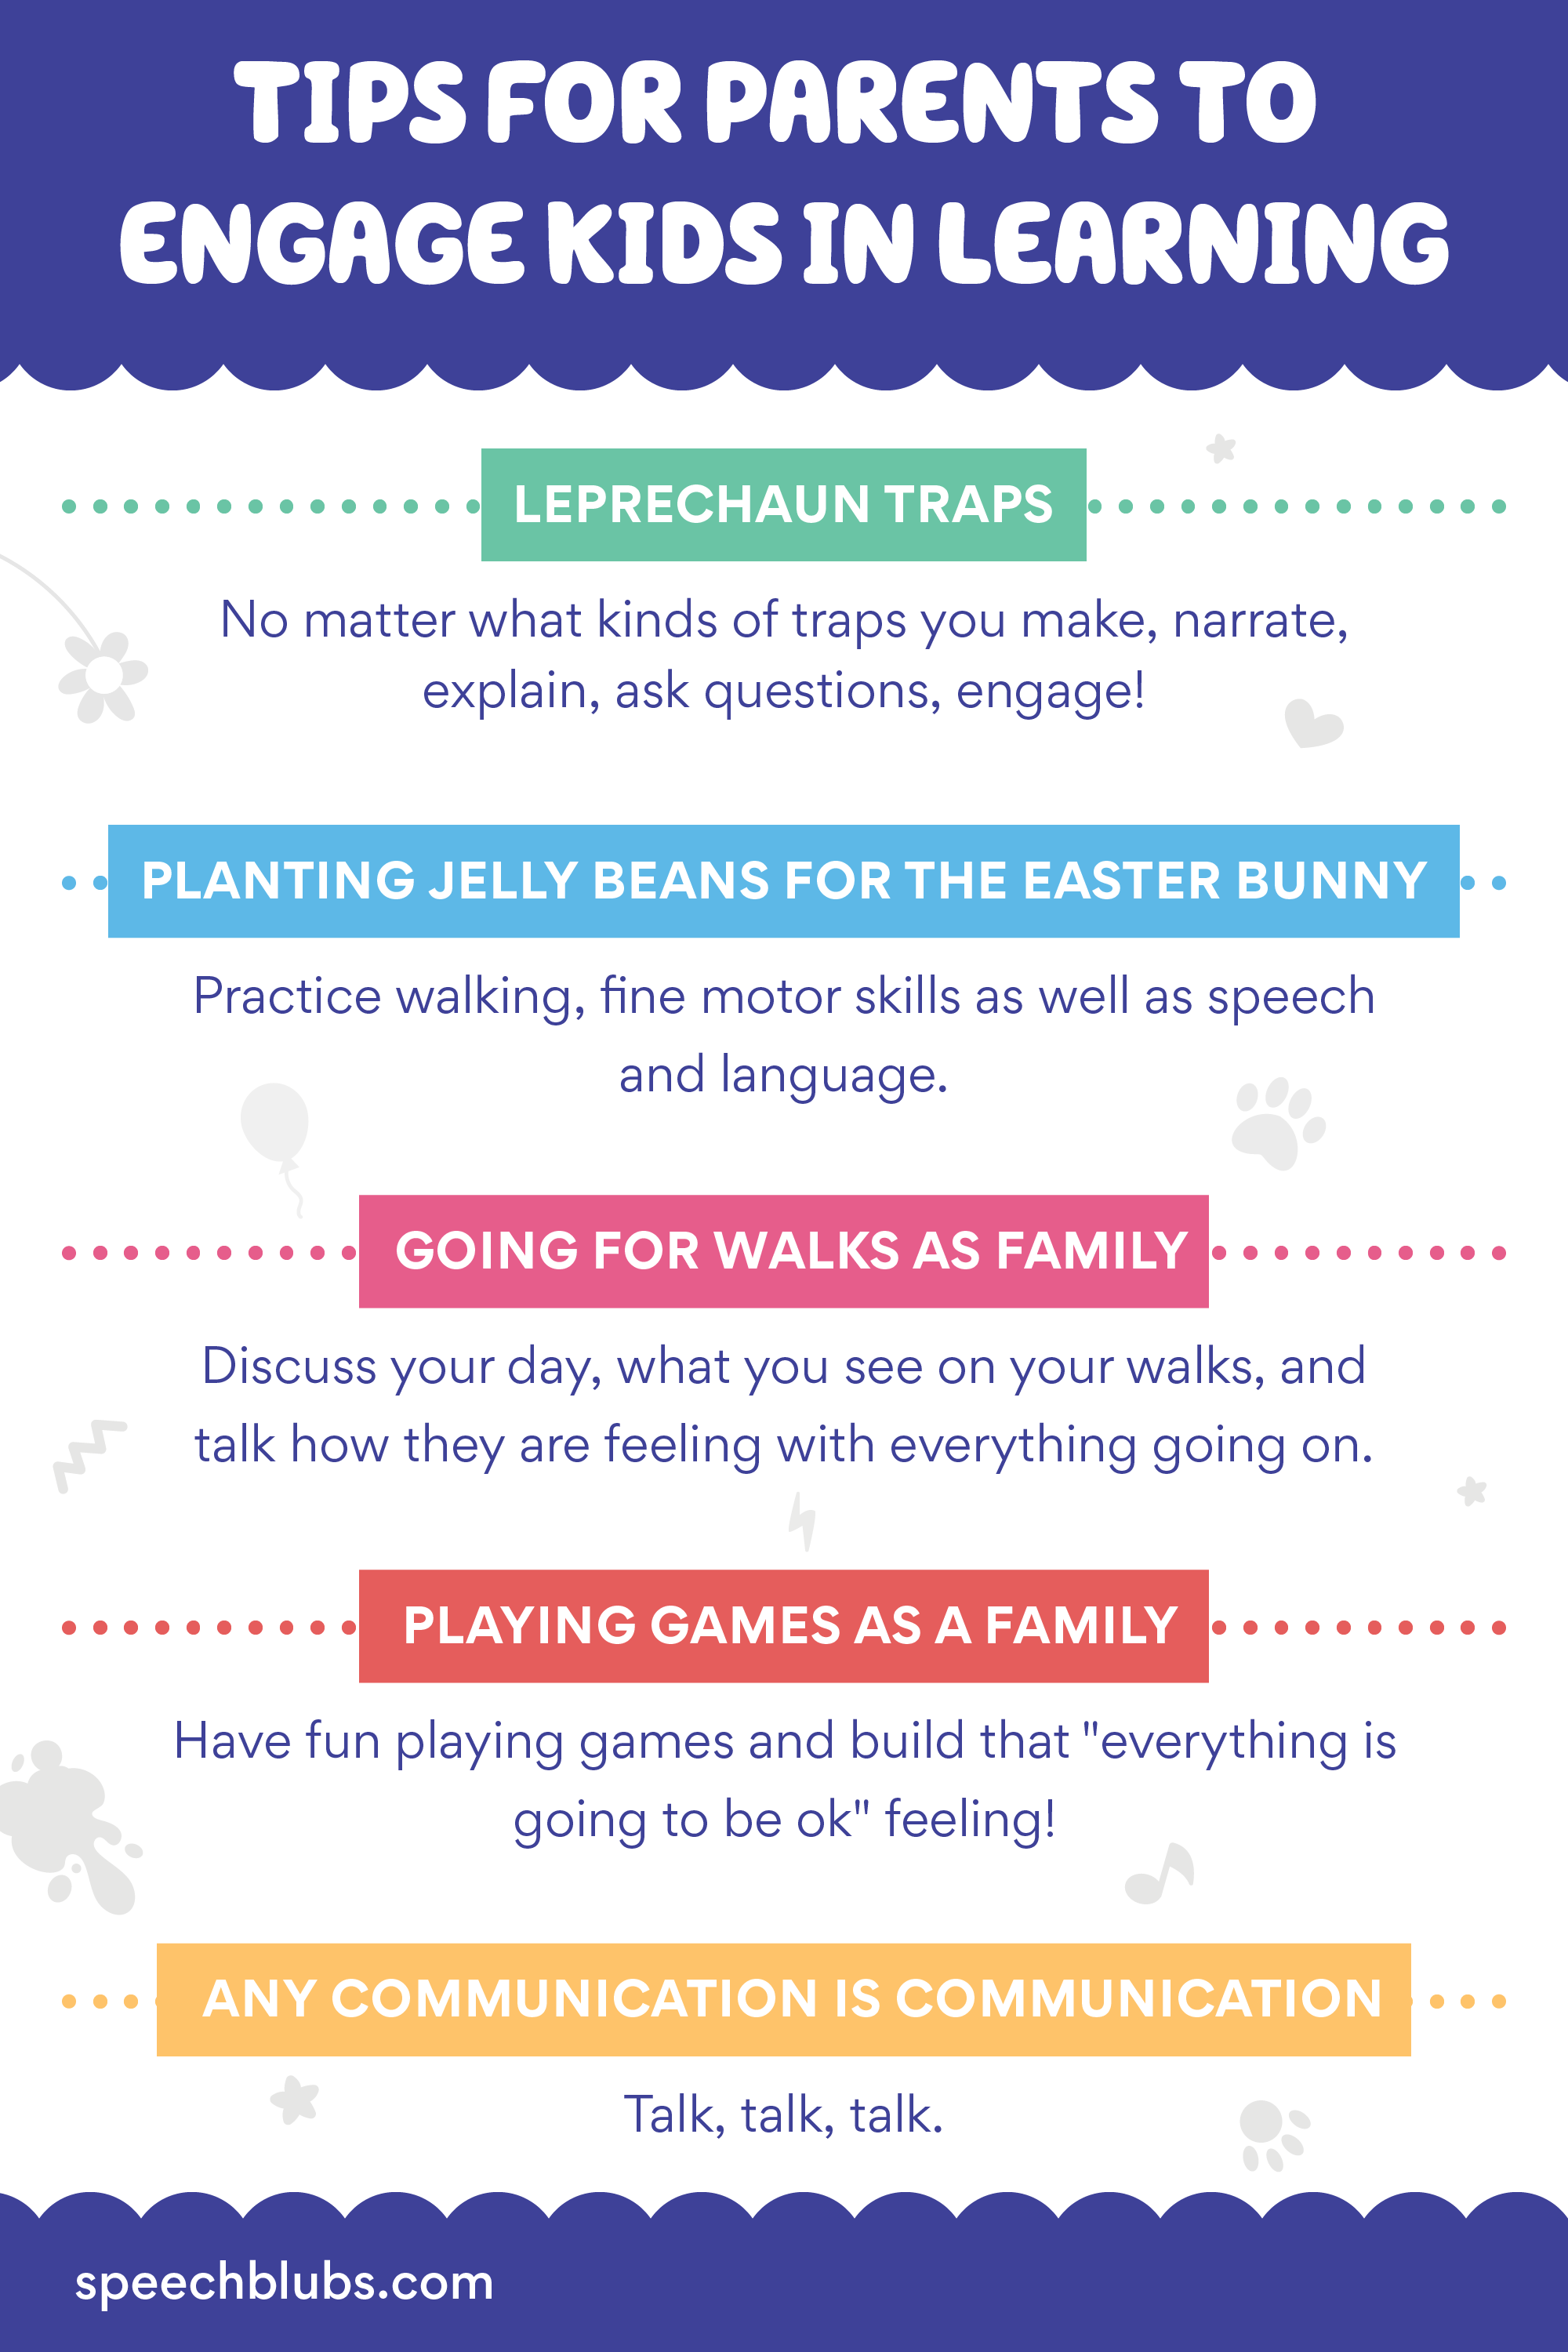 How to engage kids in learning at home